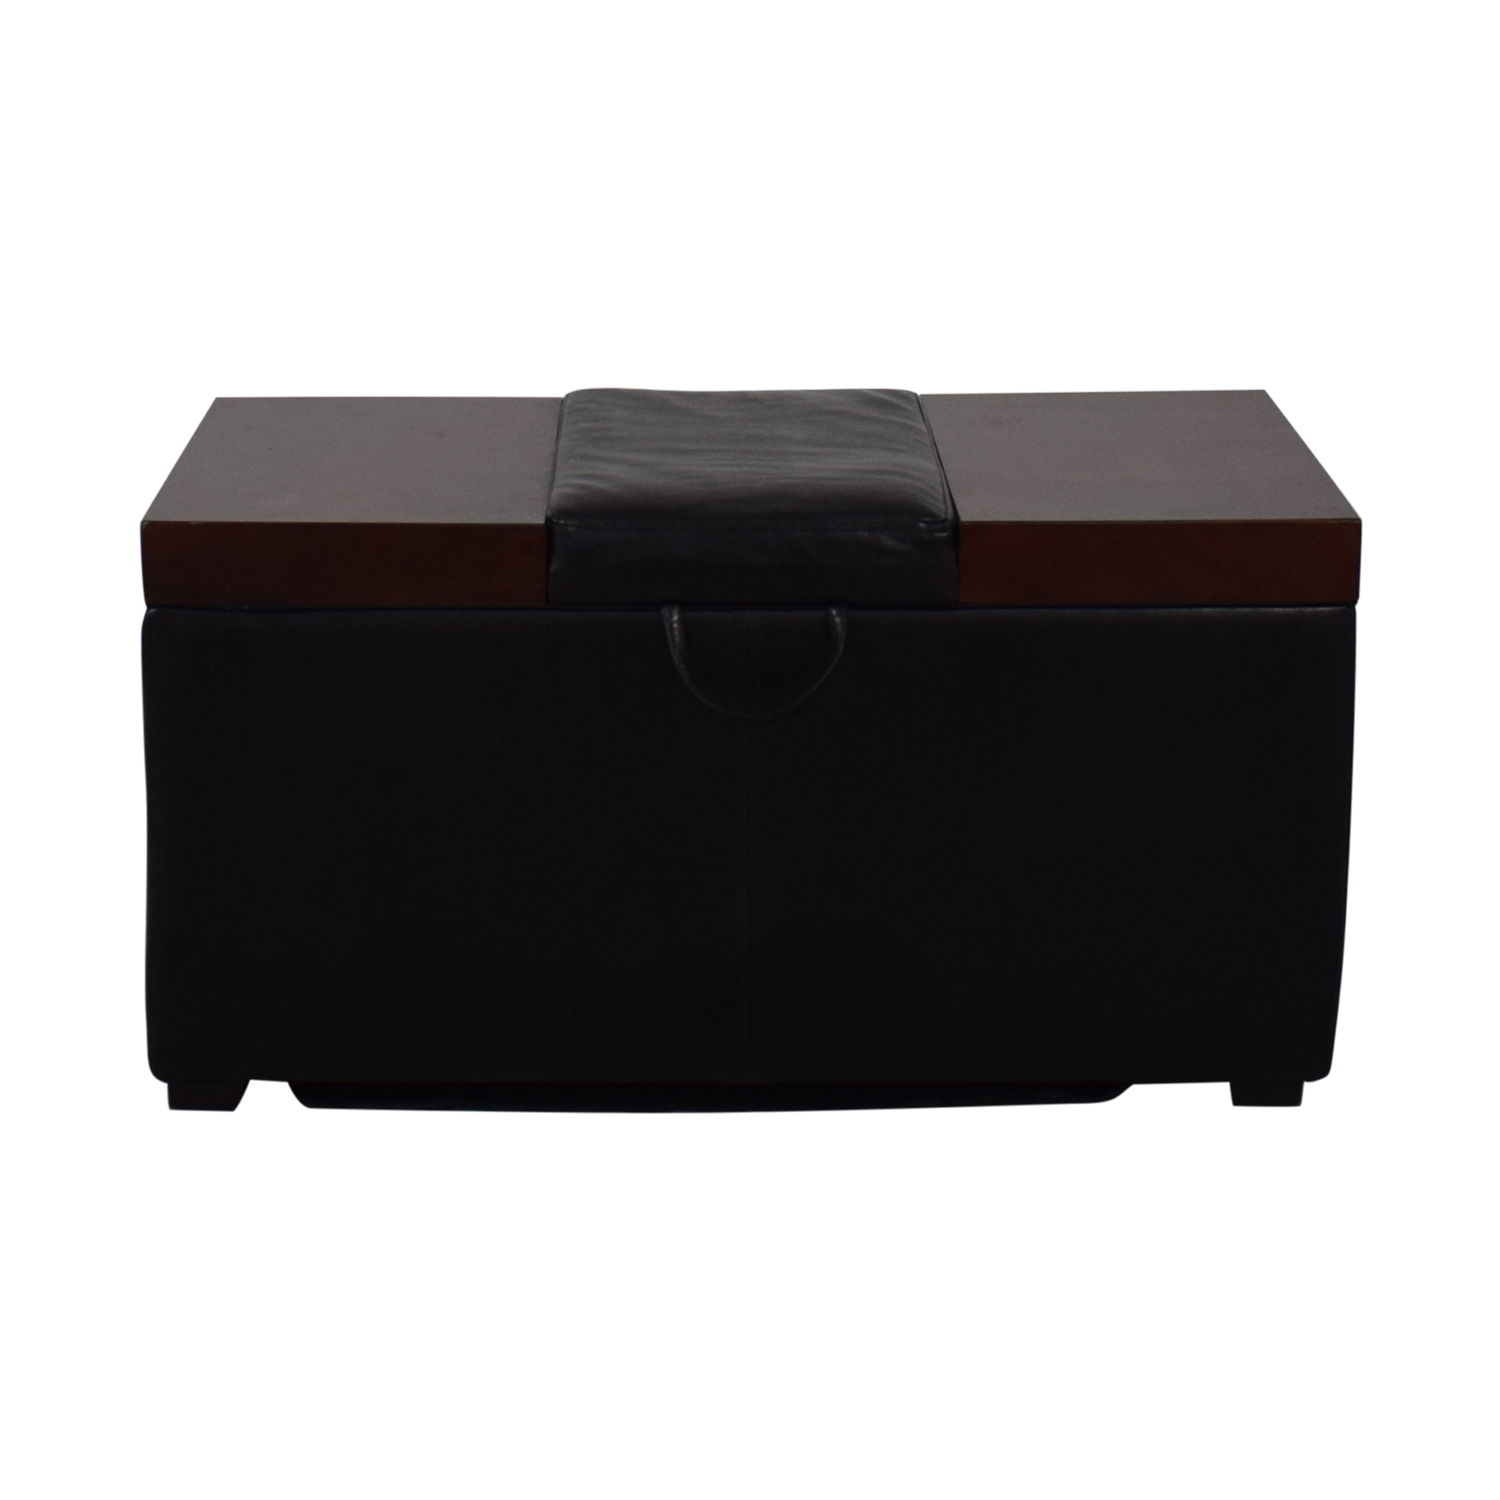 Belham Living Belham Living Madison Lift Top Upholstered Storage Ottoman for sale